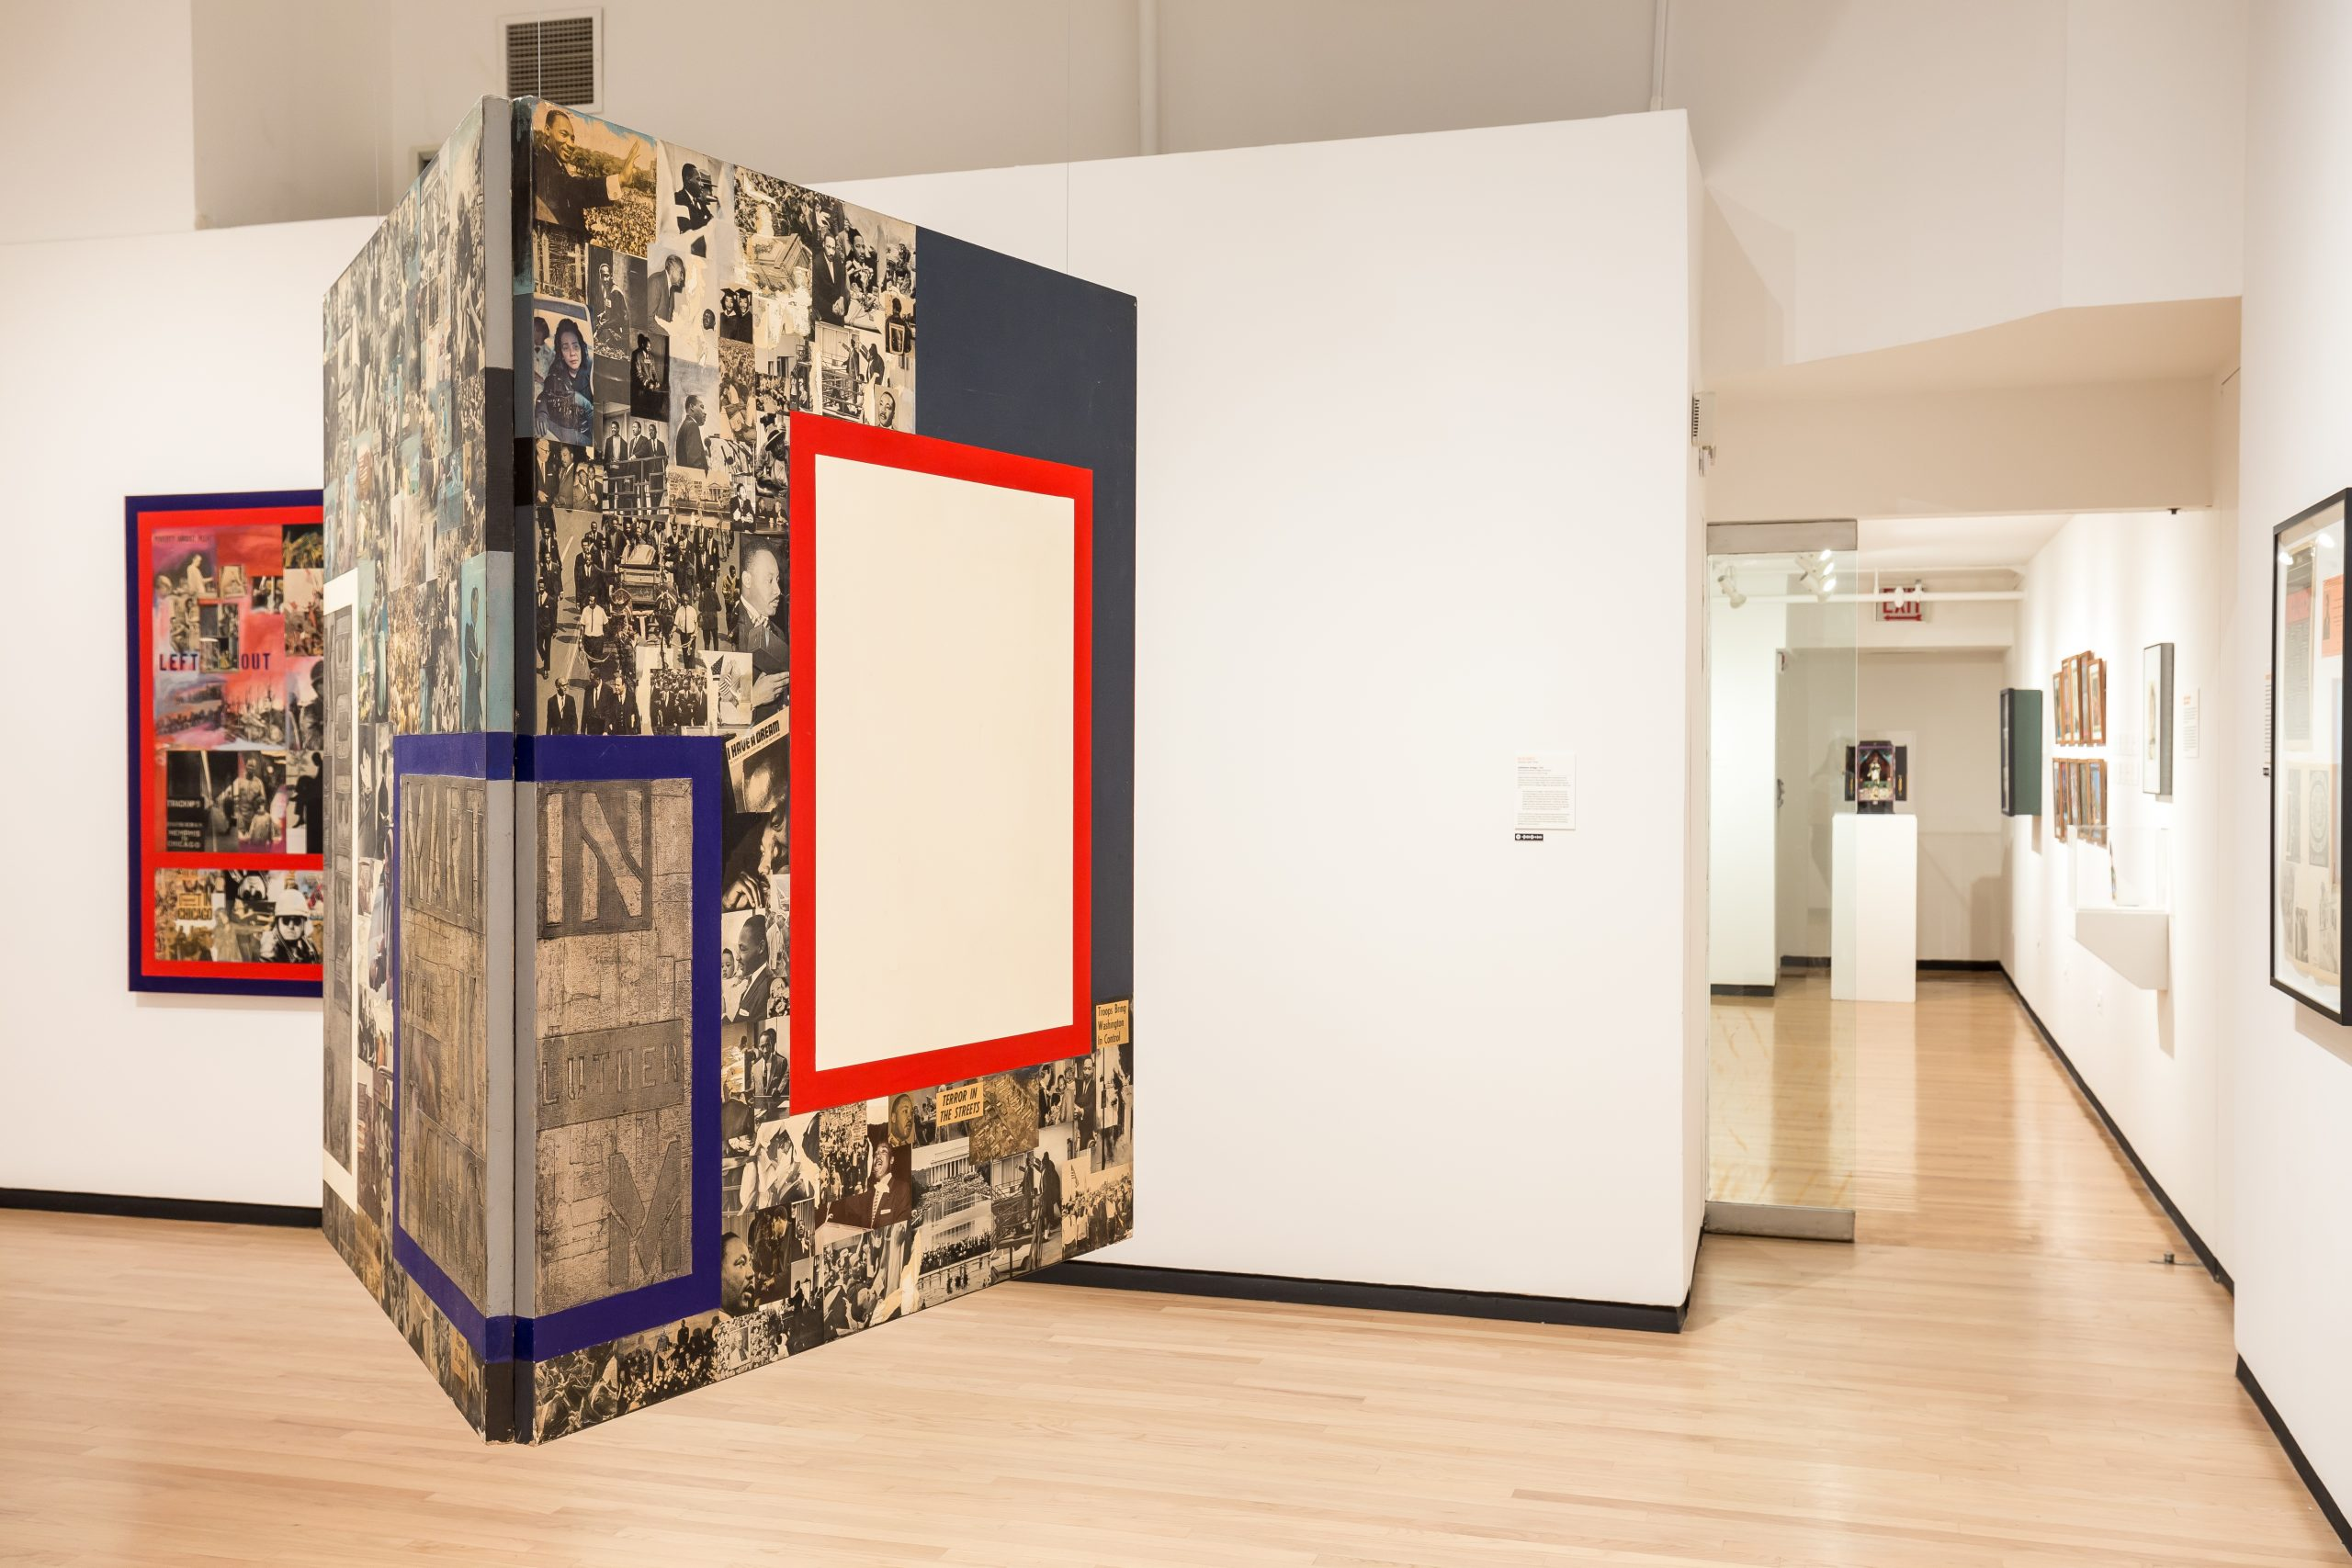 Ralph Arnold's <i>Unfinished Collage</i>, 1968, at MoCP